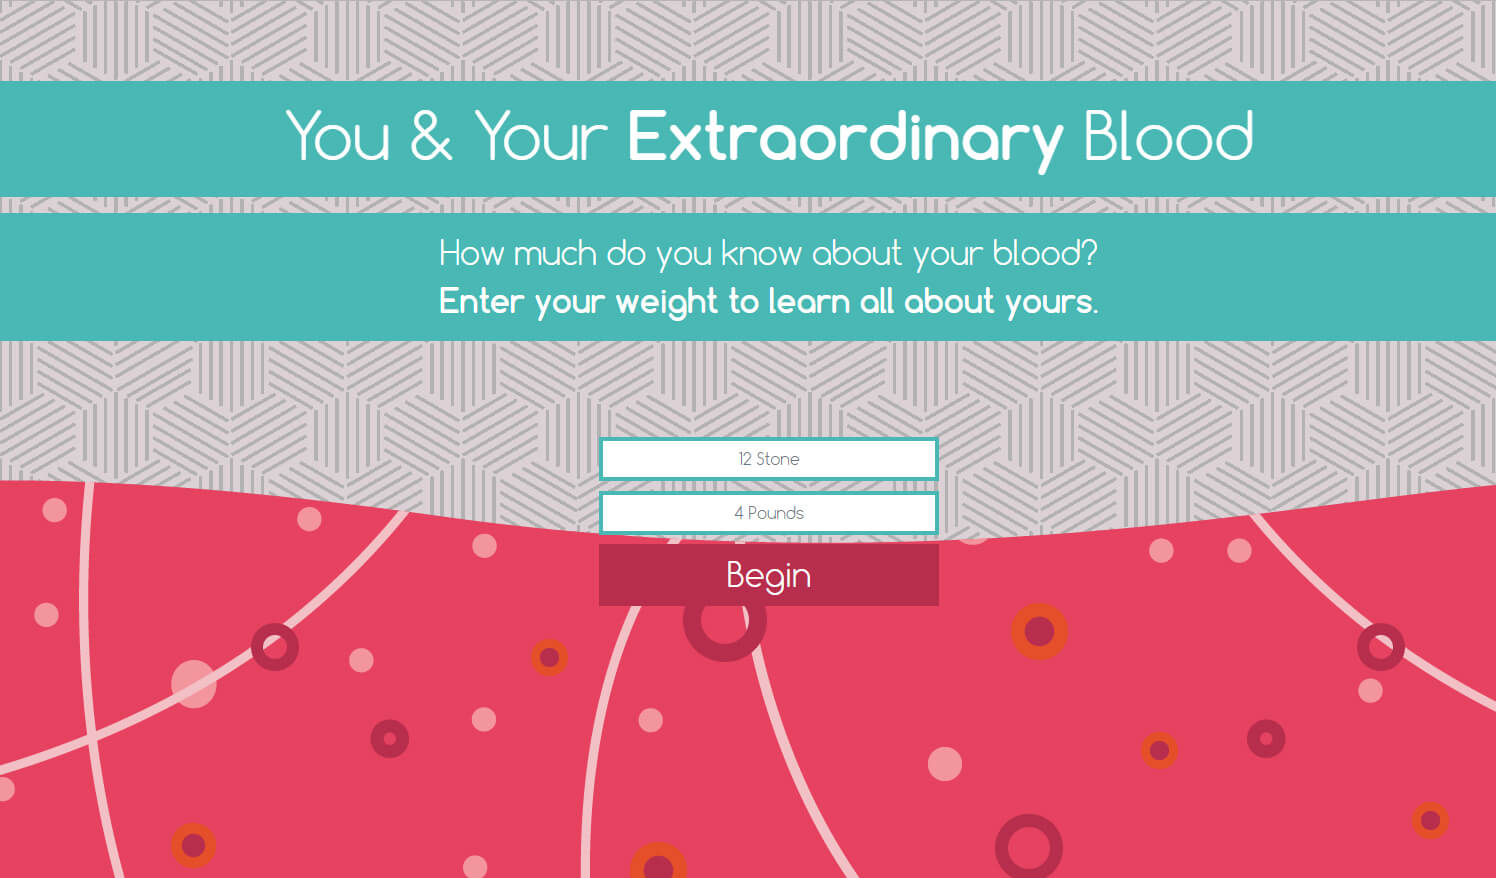 You & Your Extraordinary Blood interactive tool